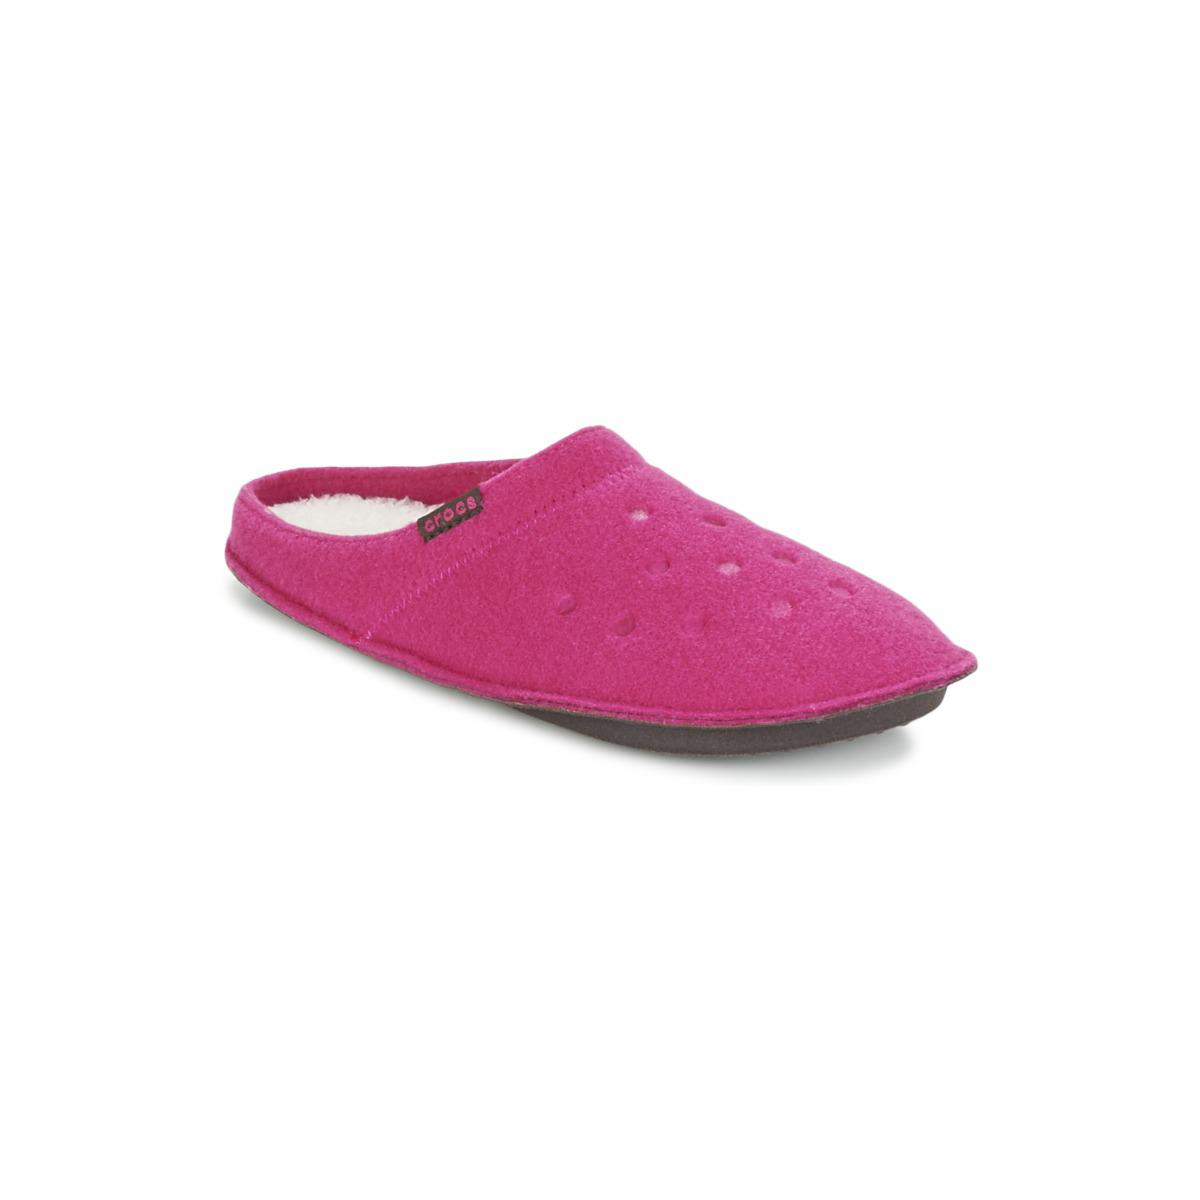 e2871049944 Crocs™ Classic Slipper Women s Slippers In Pink in Pink - Save 30 ...